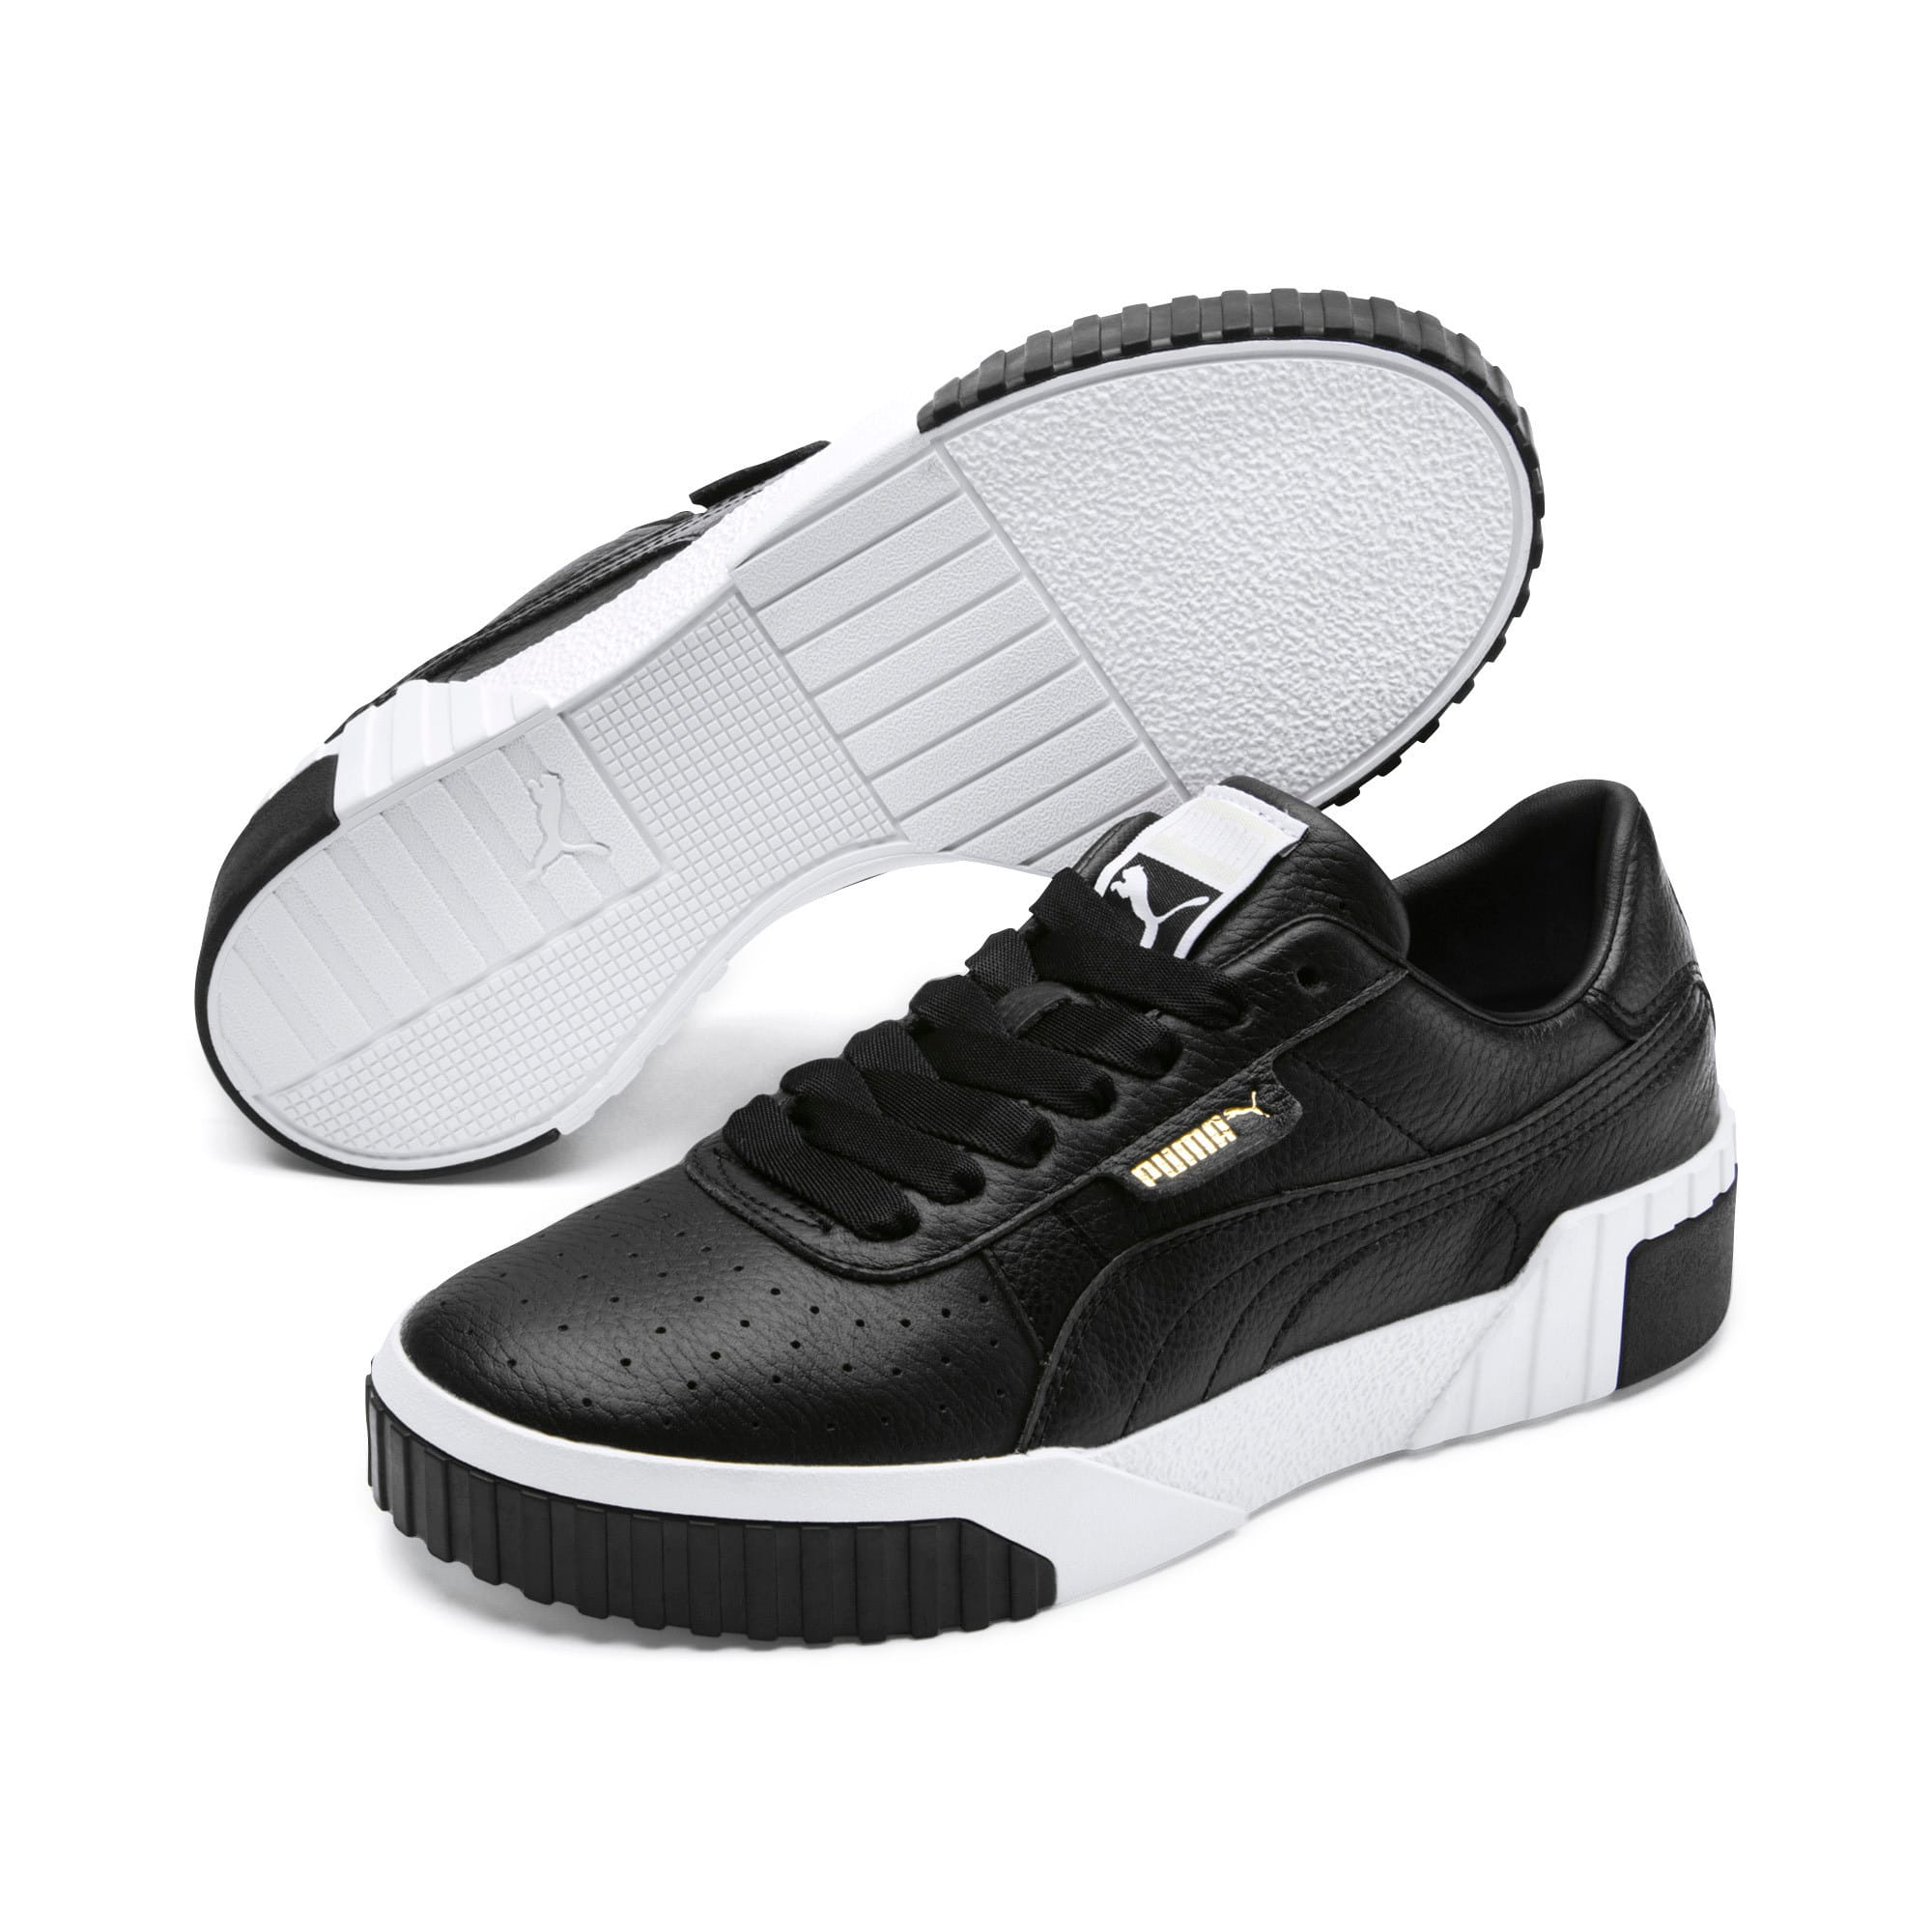 Thumbnail 3 of Cali Women's Trainers, Puma Black-Puma White, medium